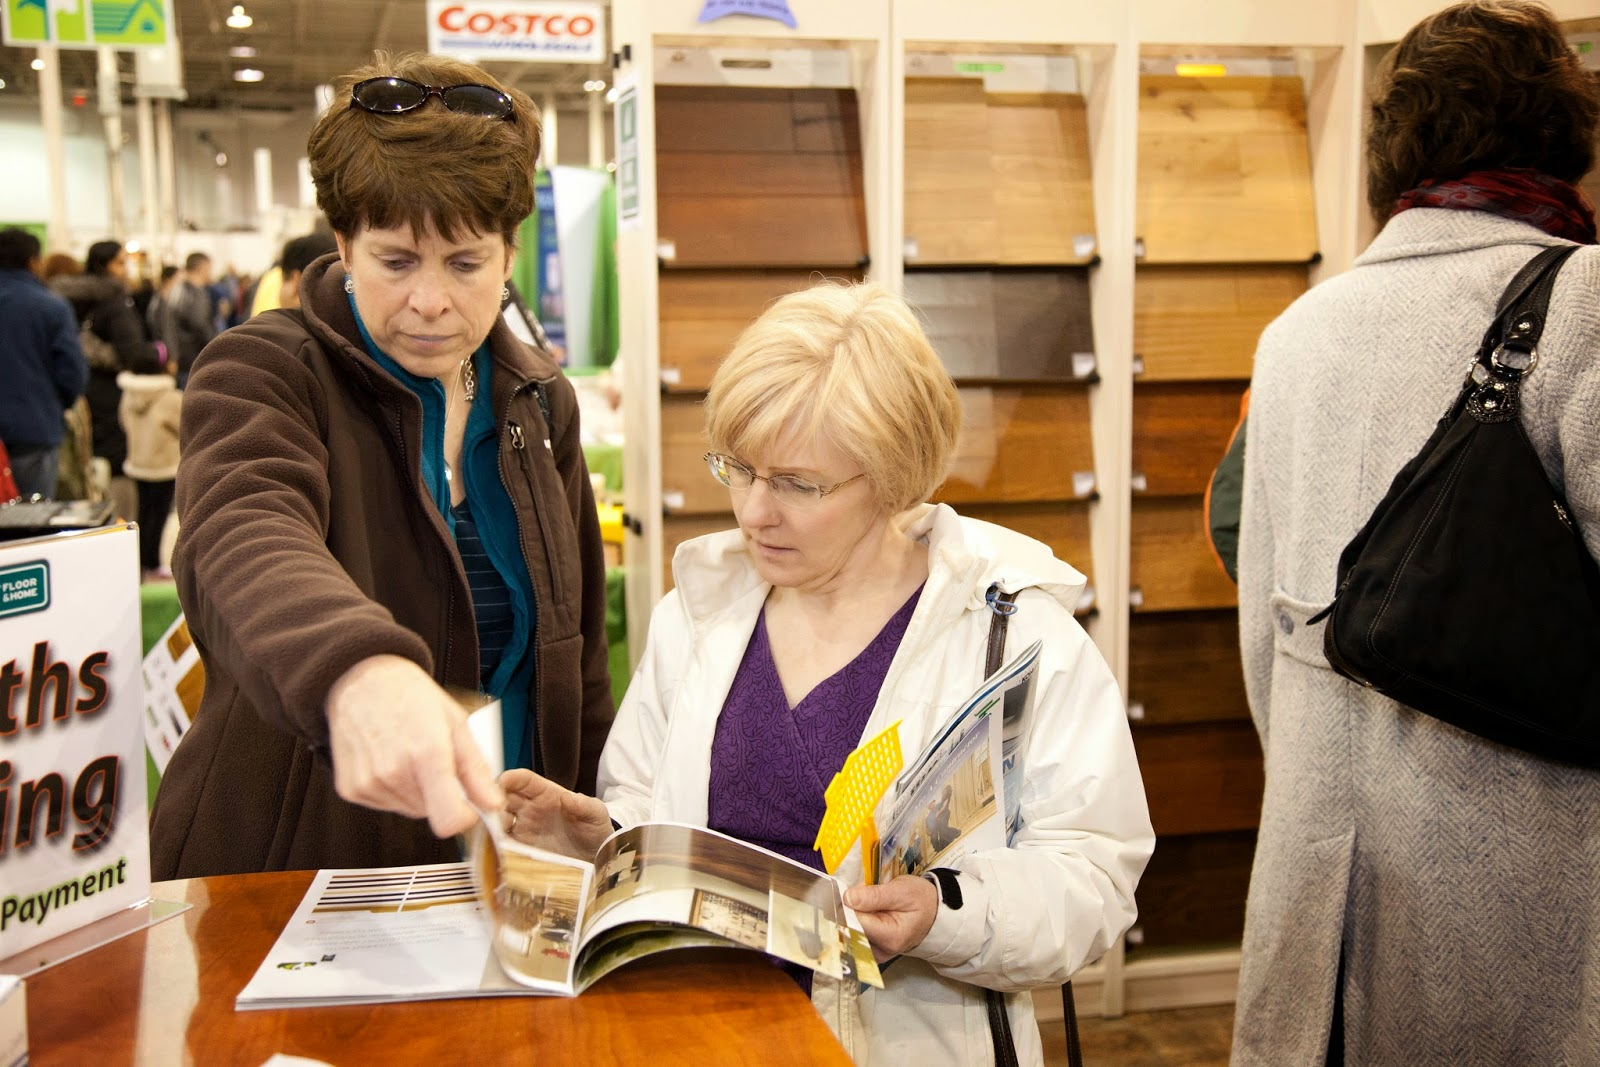 Five Tips For Getting The Most Out Of The Des Moines Home + Garden Show